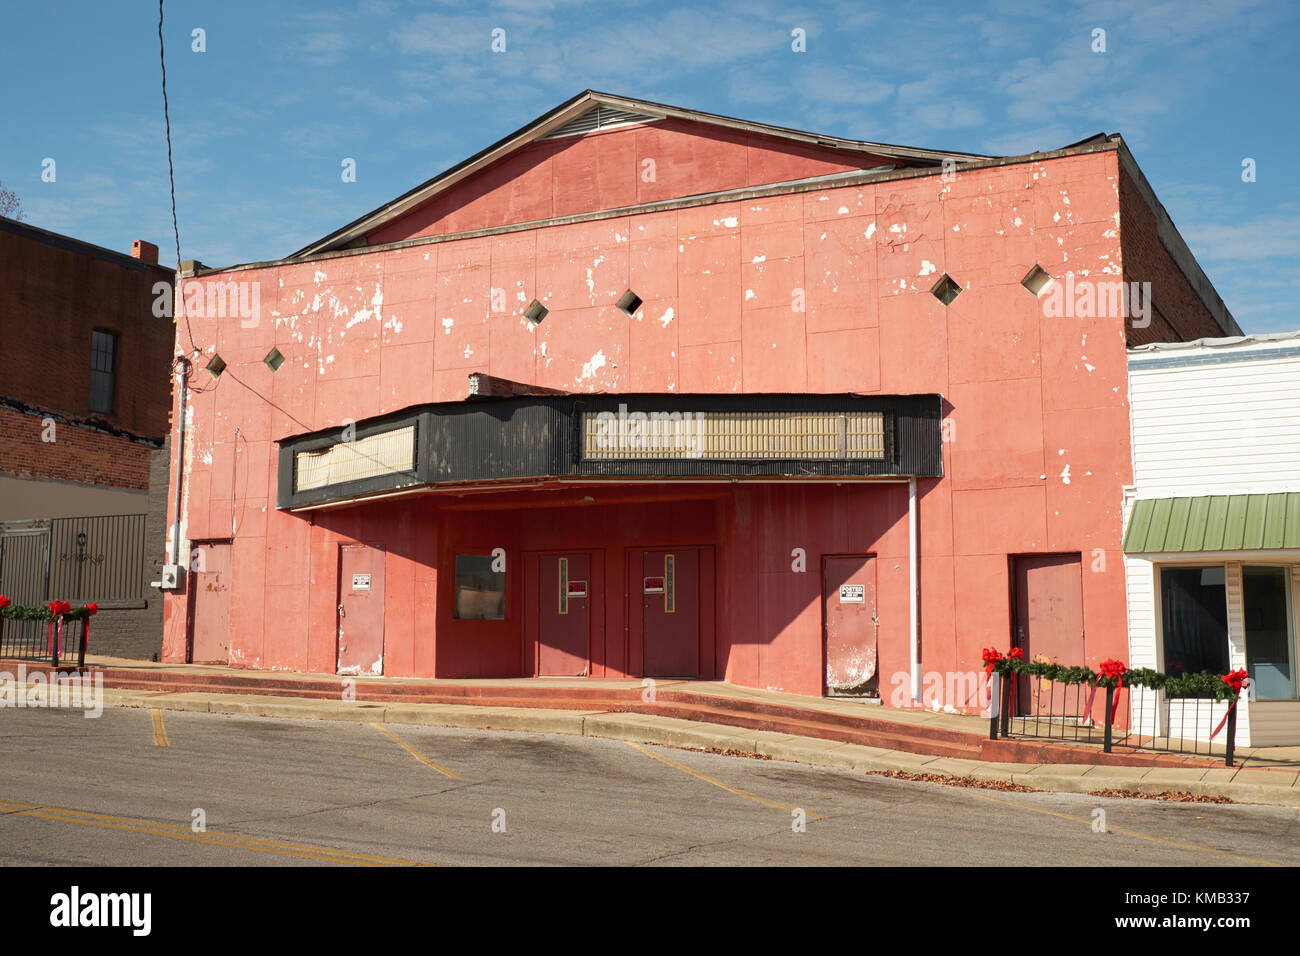 Exterior of an abandoned movie house, theater, theatre in rural community of Clanton Alabama, USA. - Stock Image